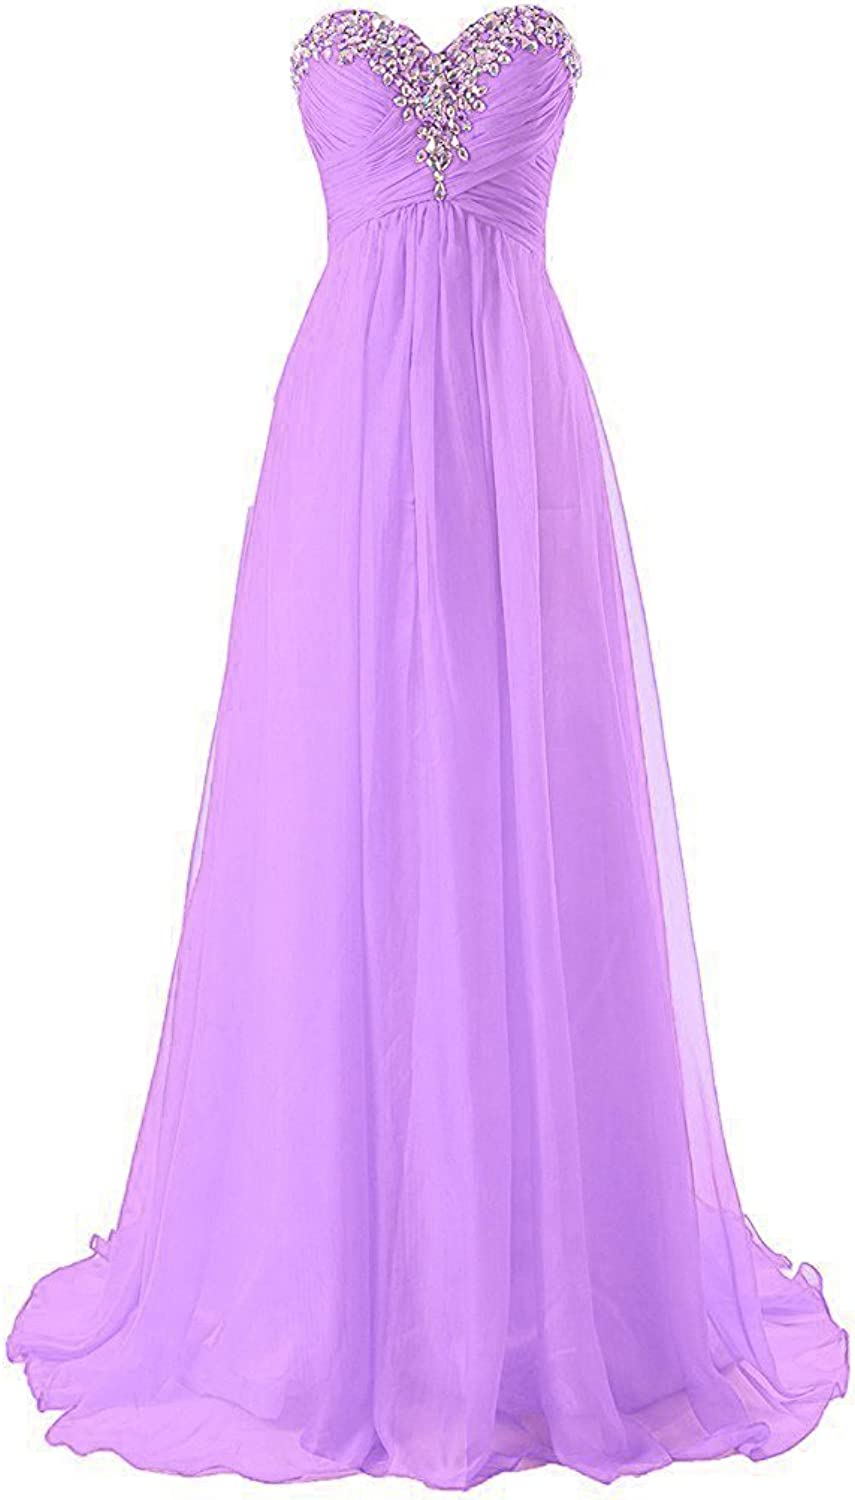 Anna's Bridal Women's Beaded Long Bridesmaid Dresses Evening Gowns